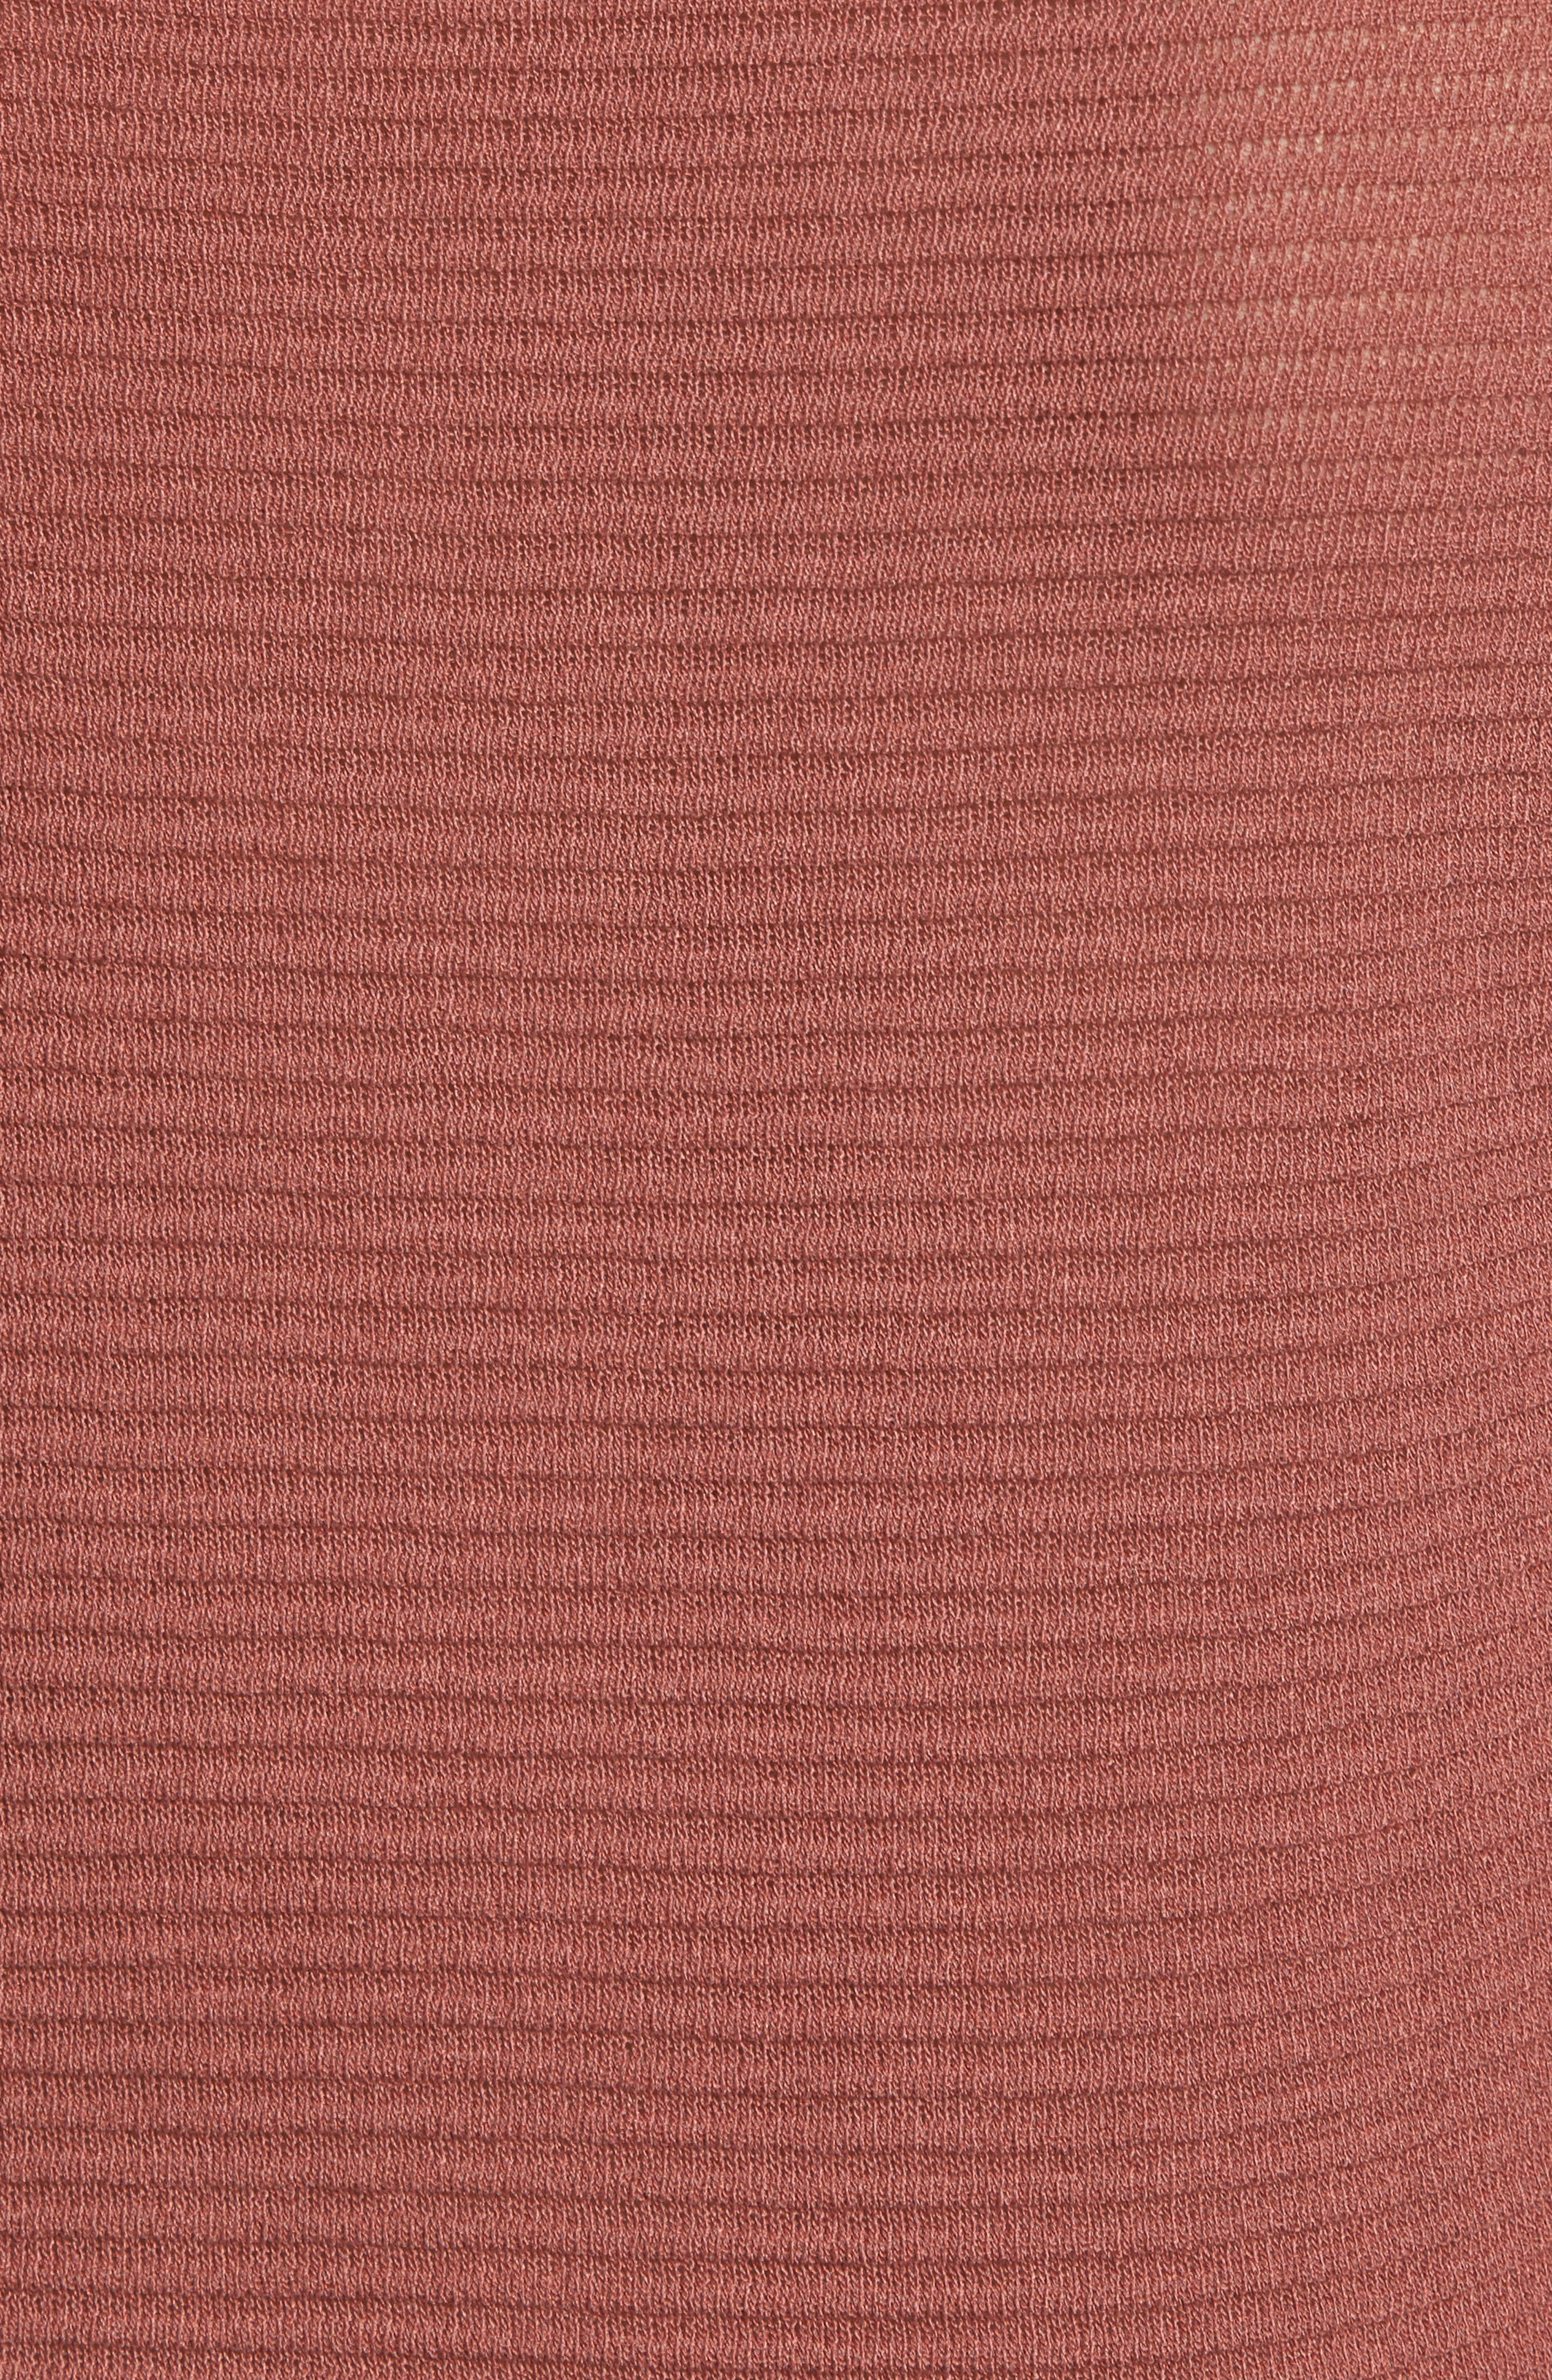 Ribbed Sweatshirt,                             Alternate thumbnail 6, color,                             Dusty Copper